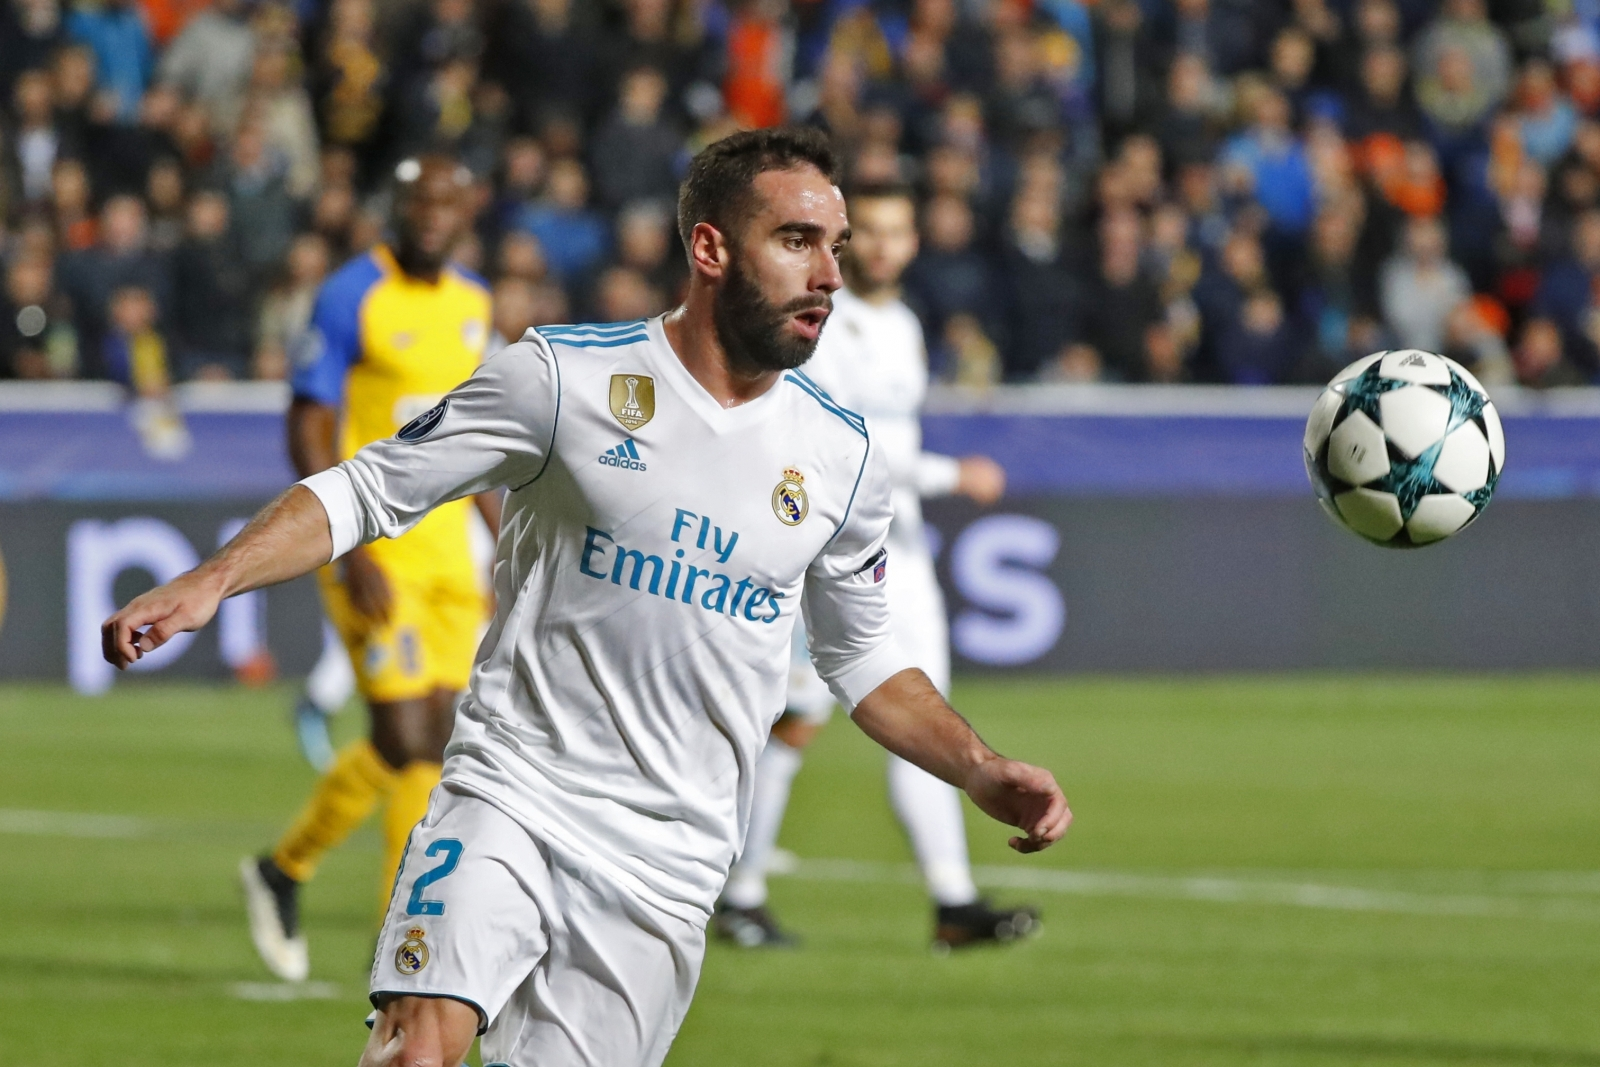 Real Madrid´s Carvajal faces UEFA investigation over APOEL booking